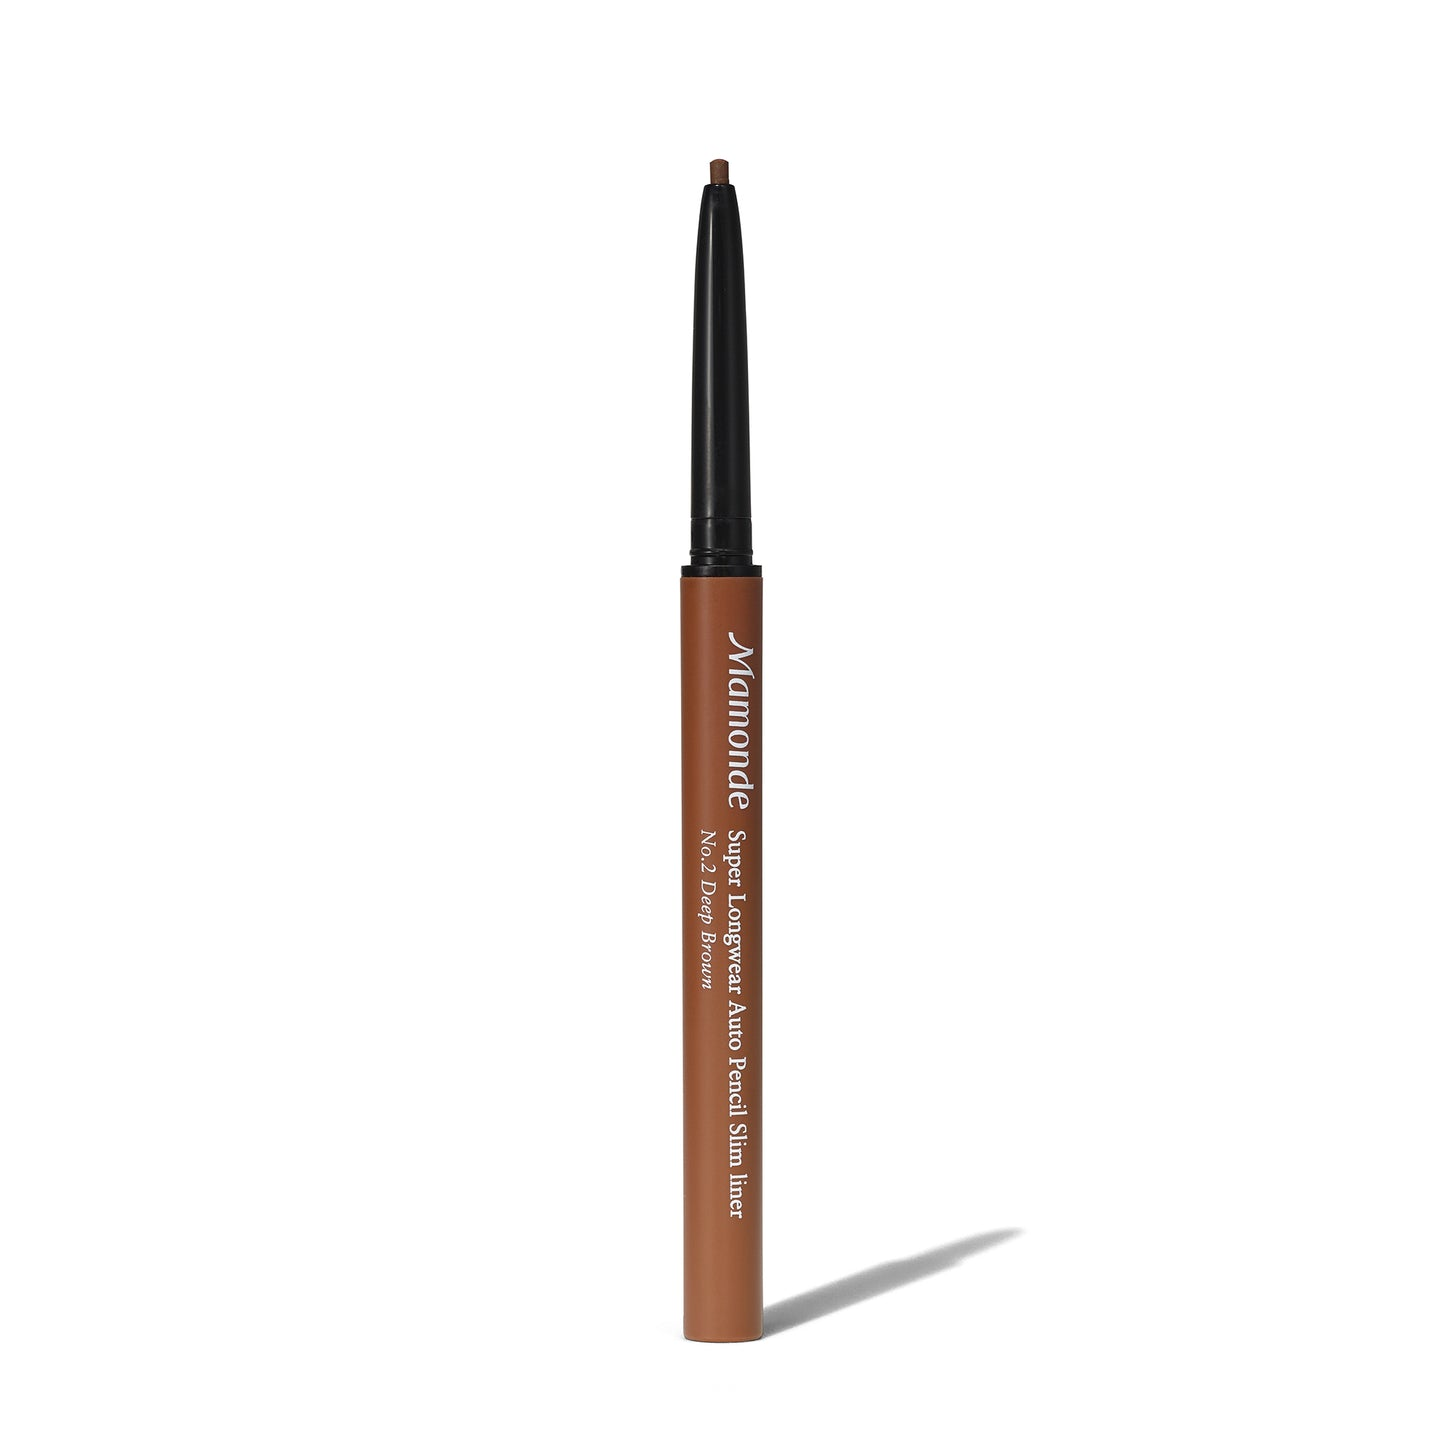 Mamonde<br>Super Longwear Auto Pencil Eyeliner